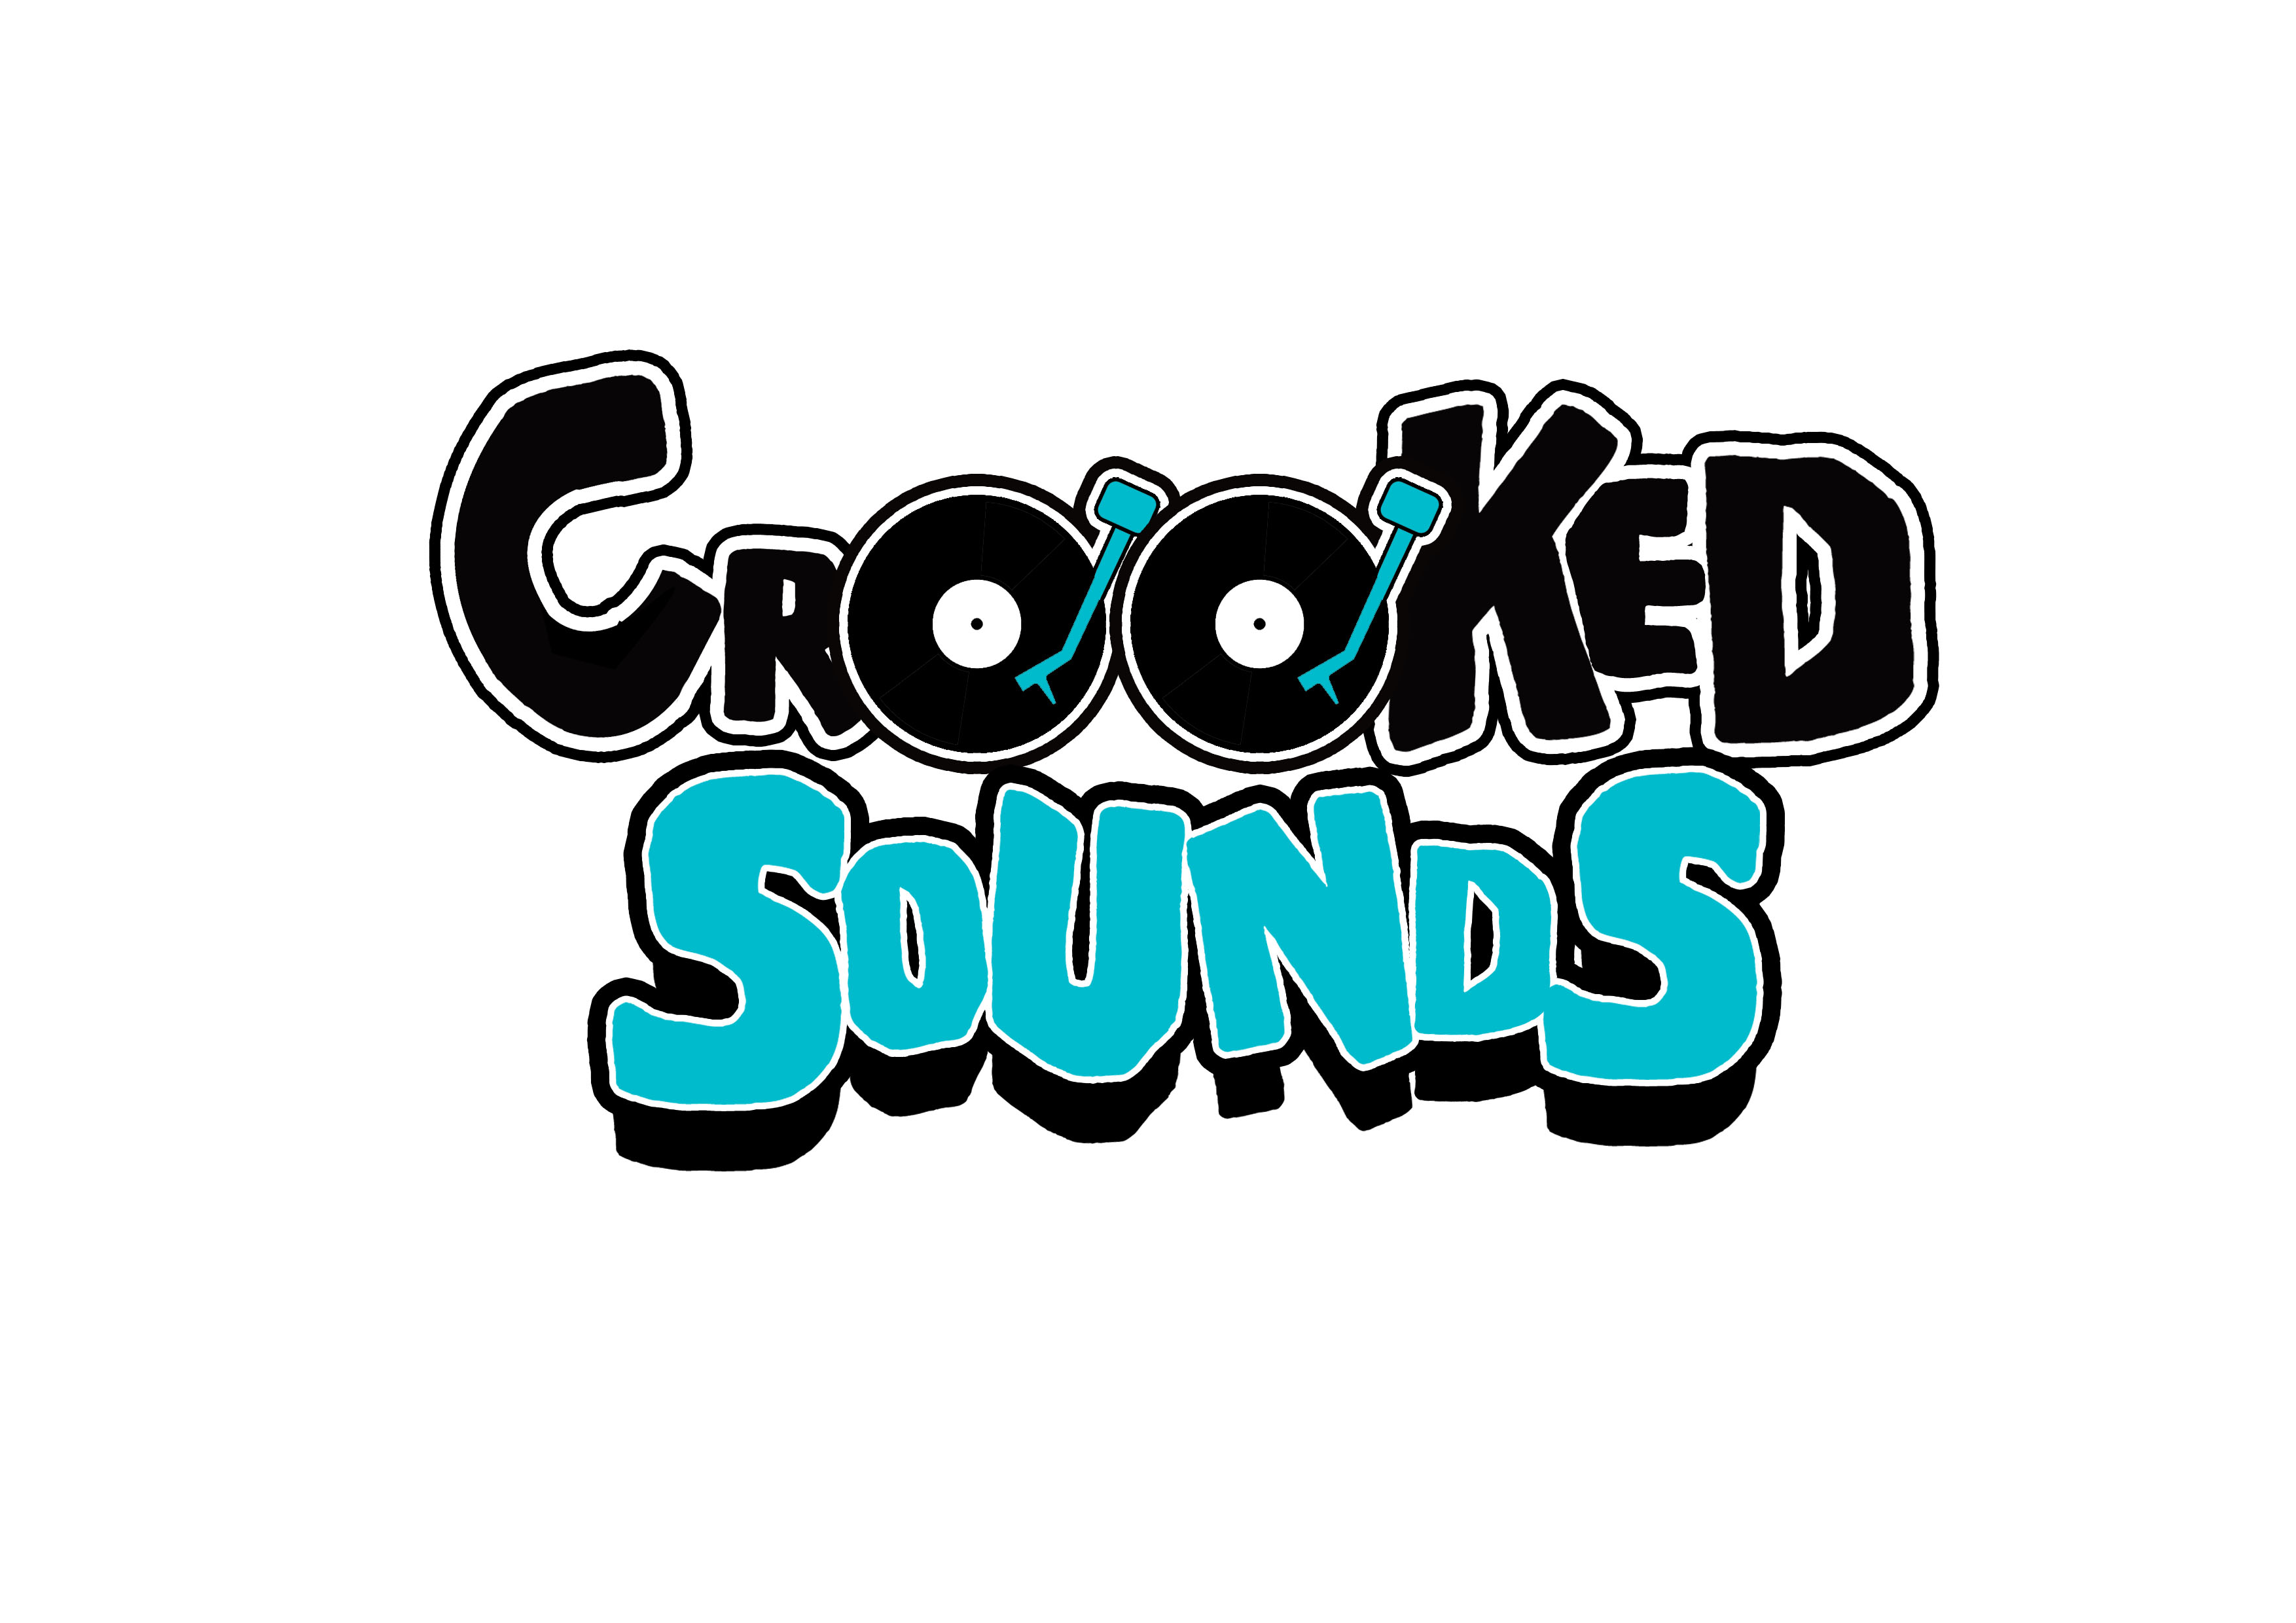 Crooked Sounds